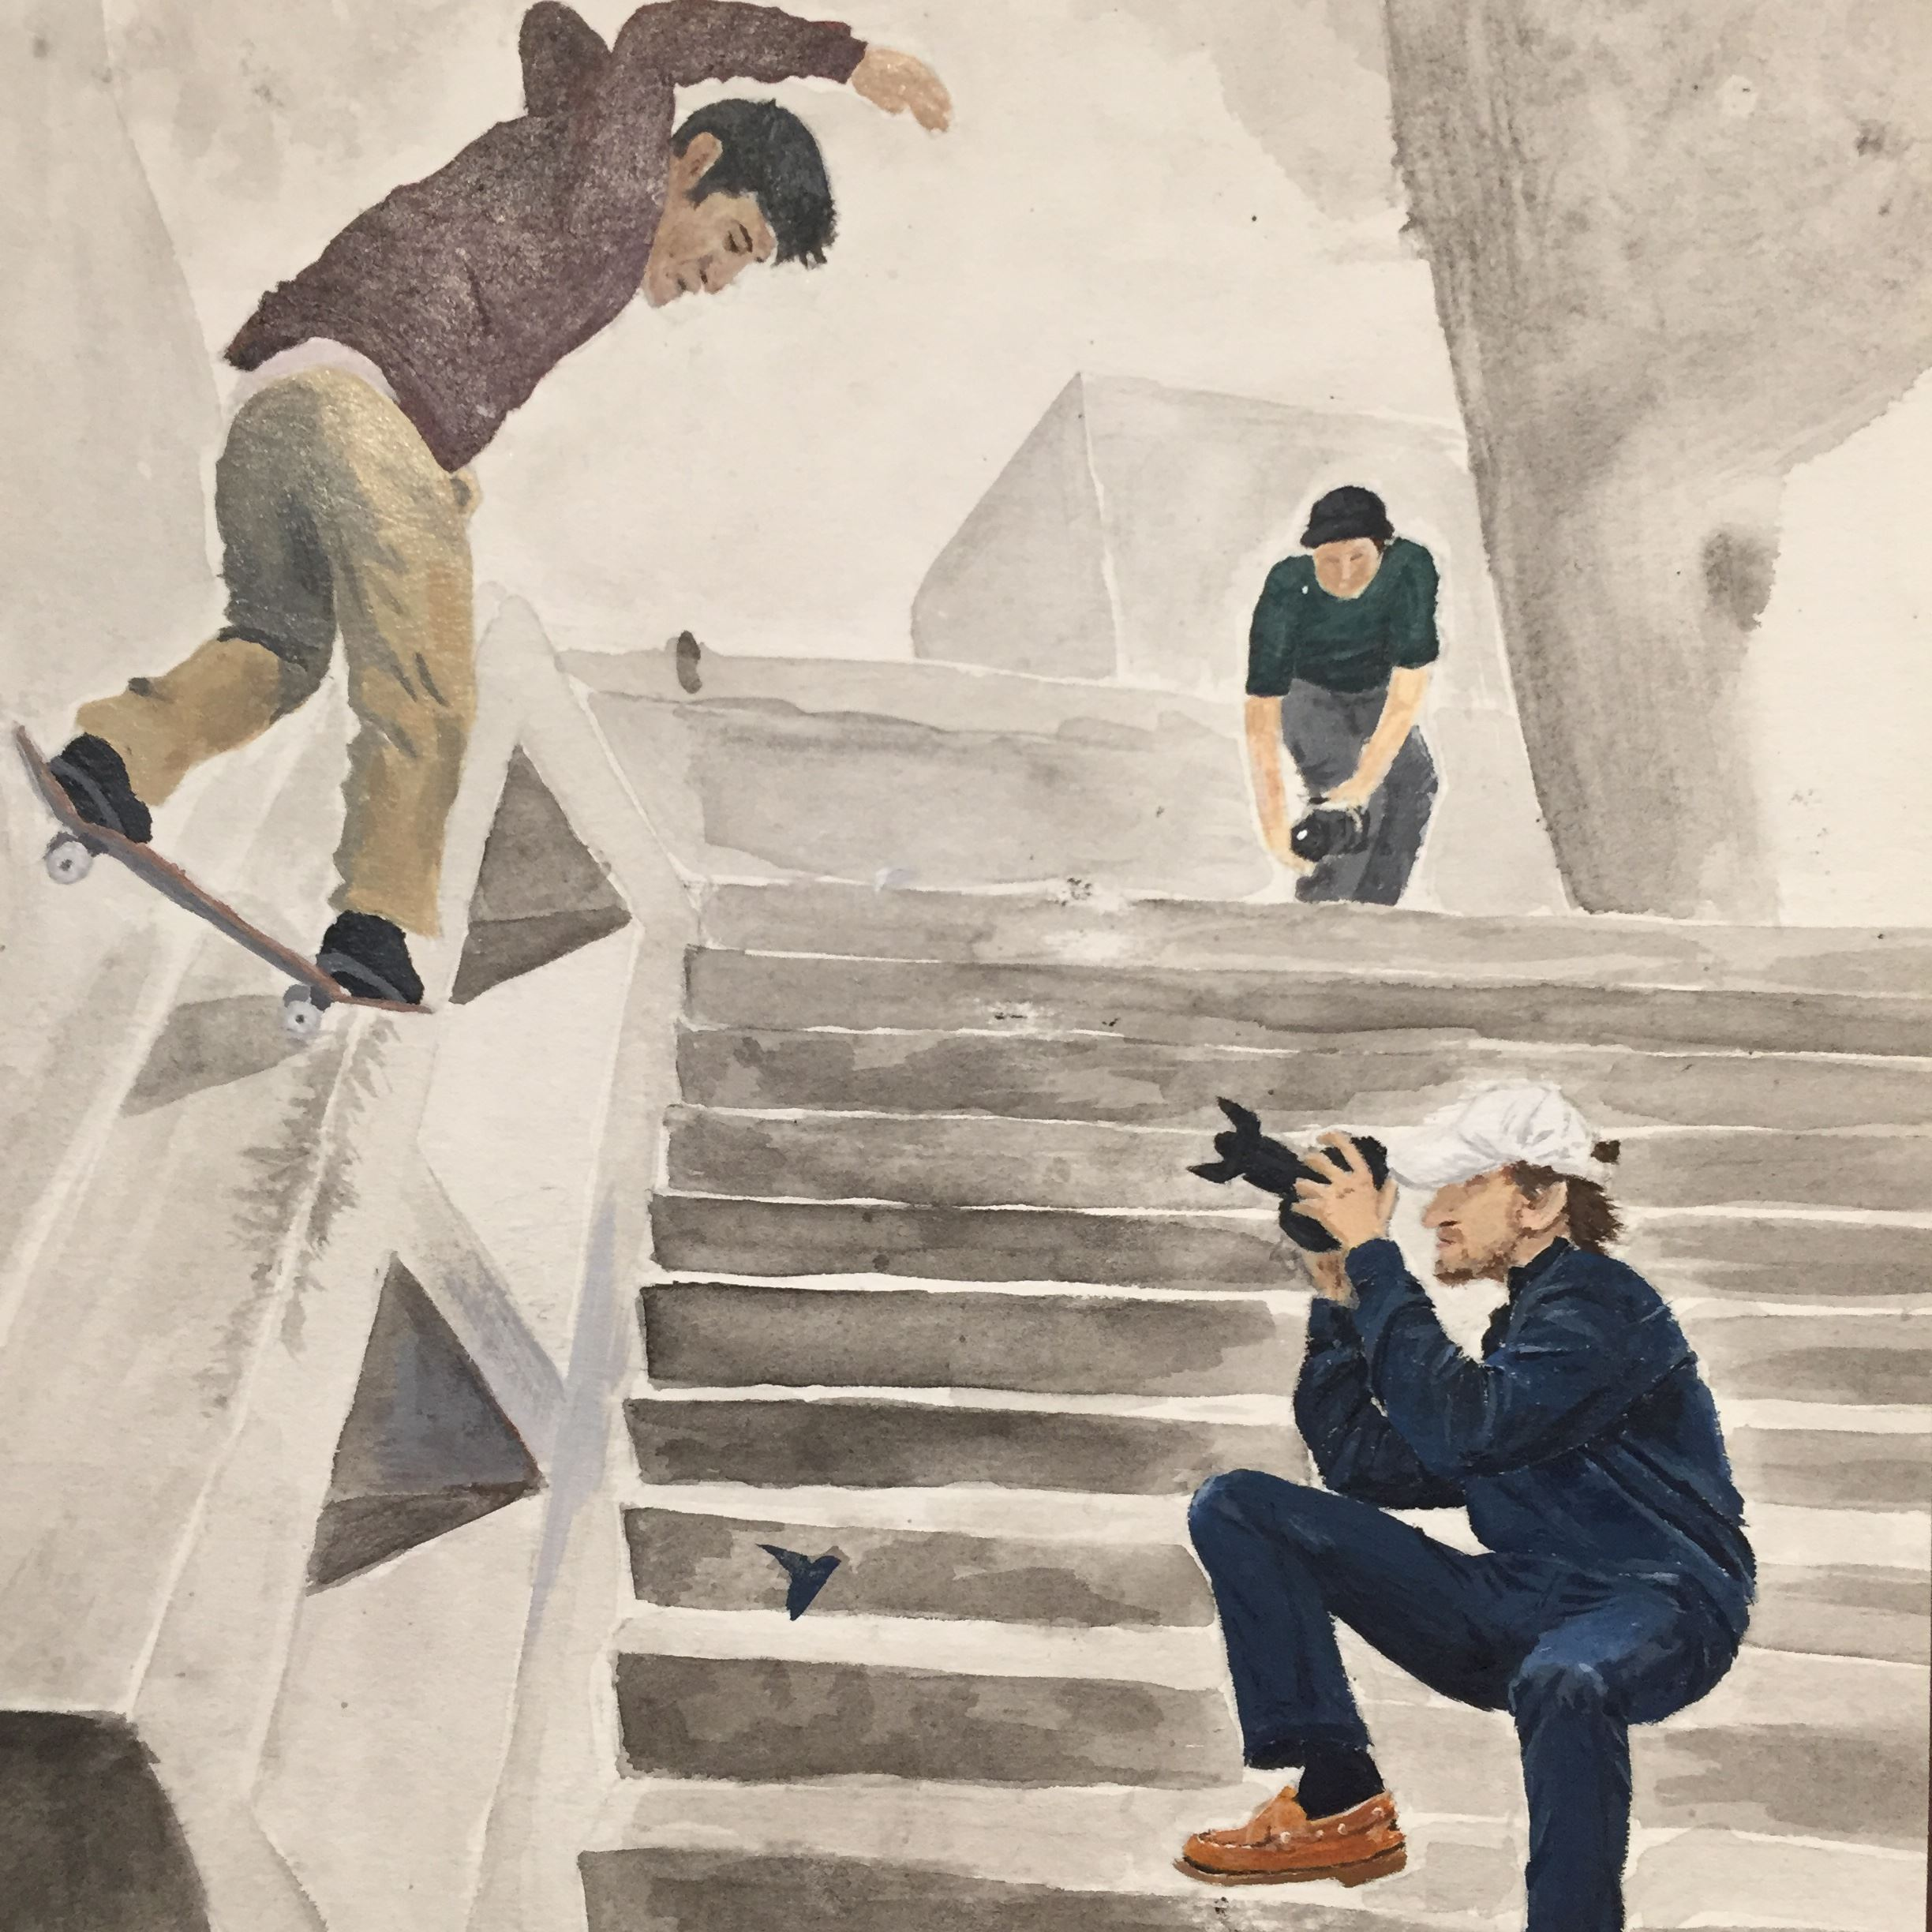 Painting of photographers and skateboarder